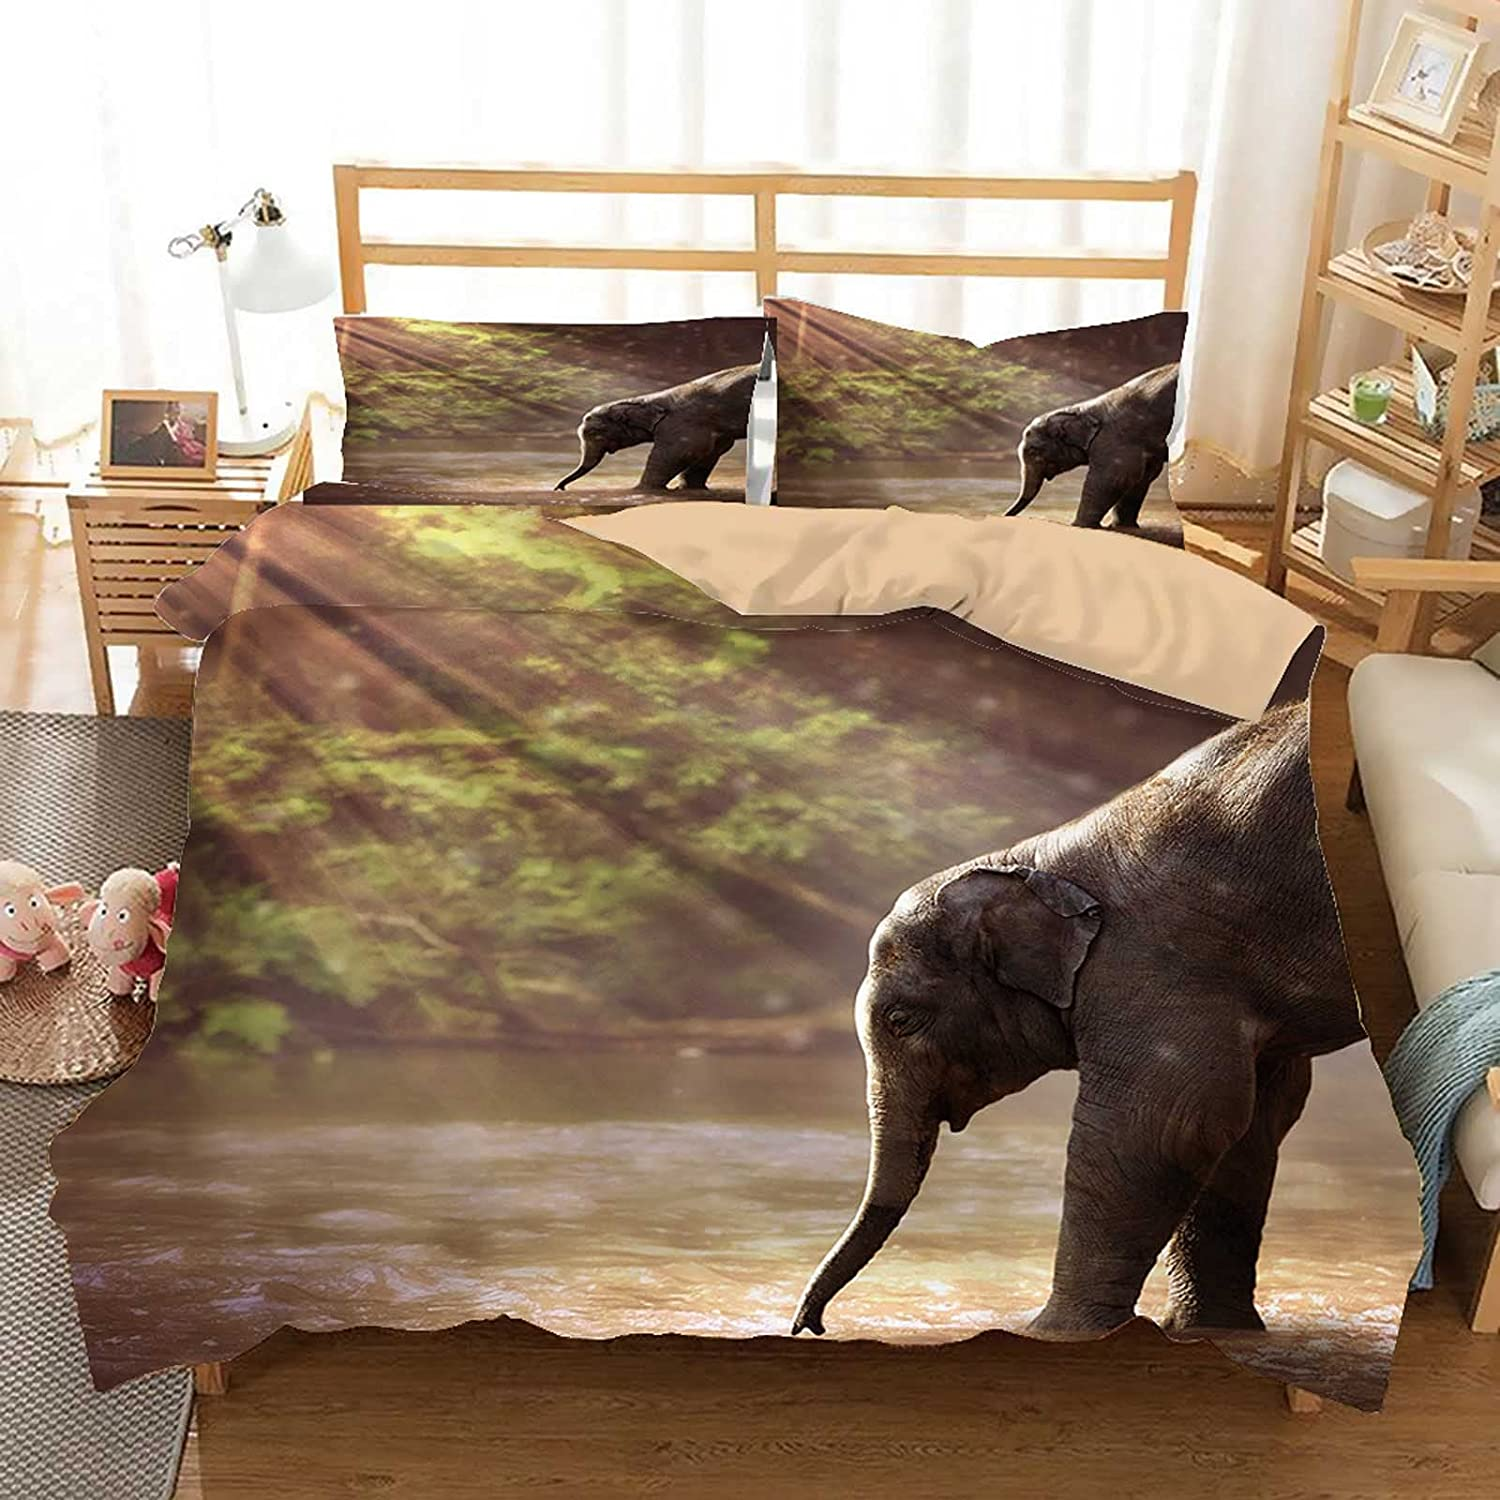 Max Fees free!! 40% OFF Elephant Young Watering Hole Animal L Set Bedding